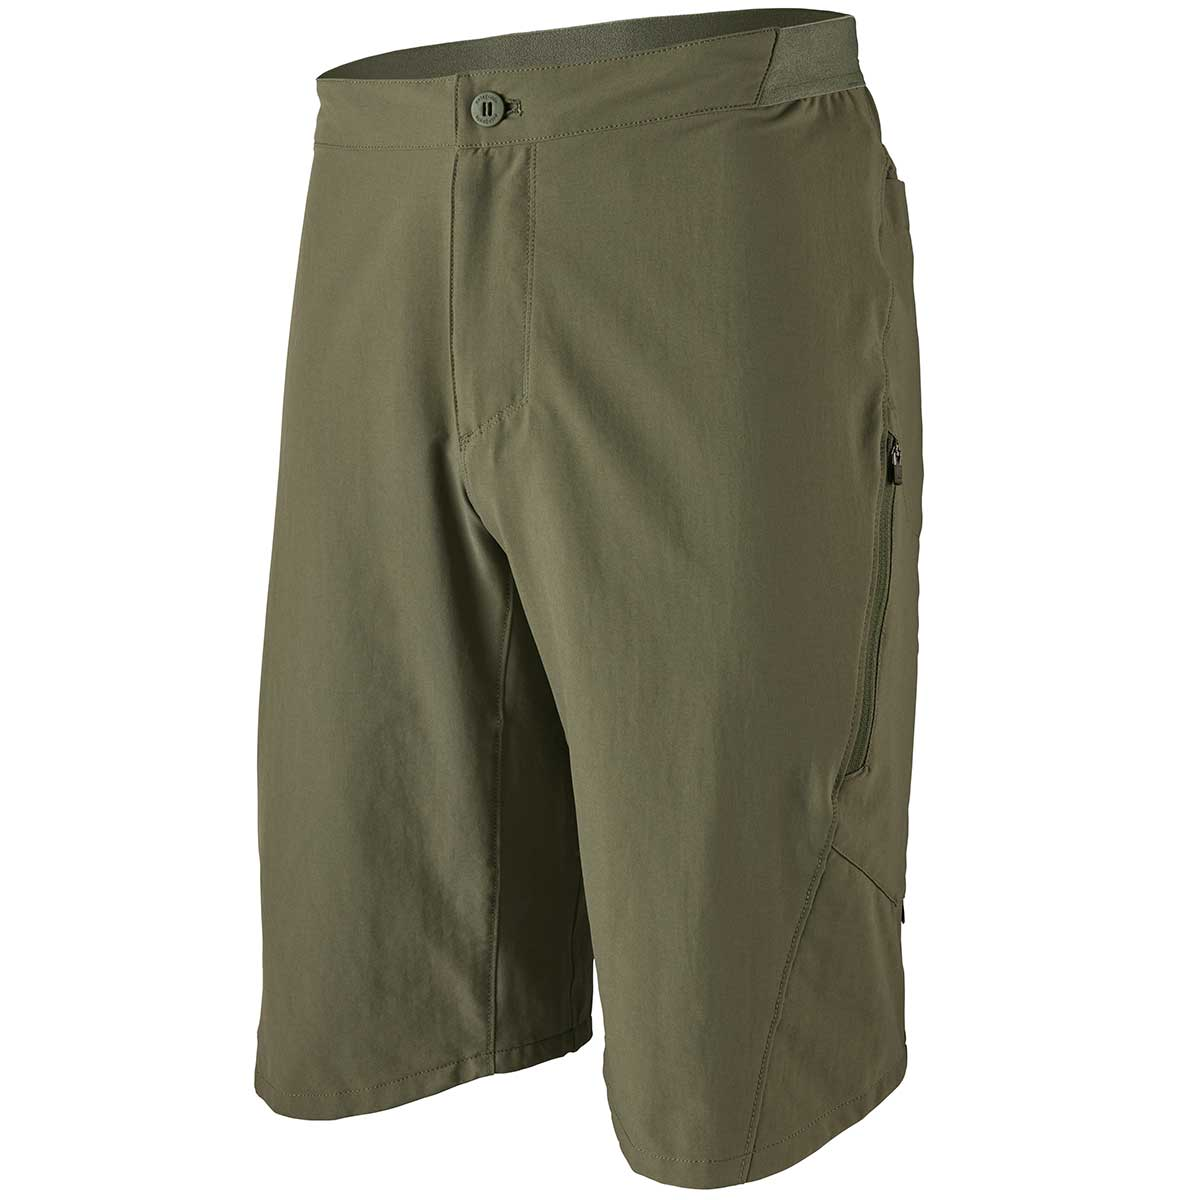 Patagonia men's Landfarer Bike Short in Industrial Green front view